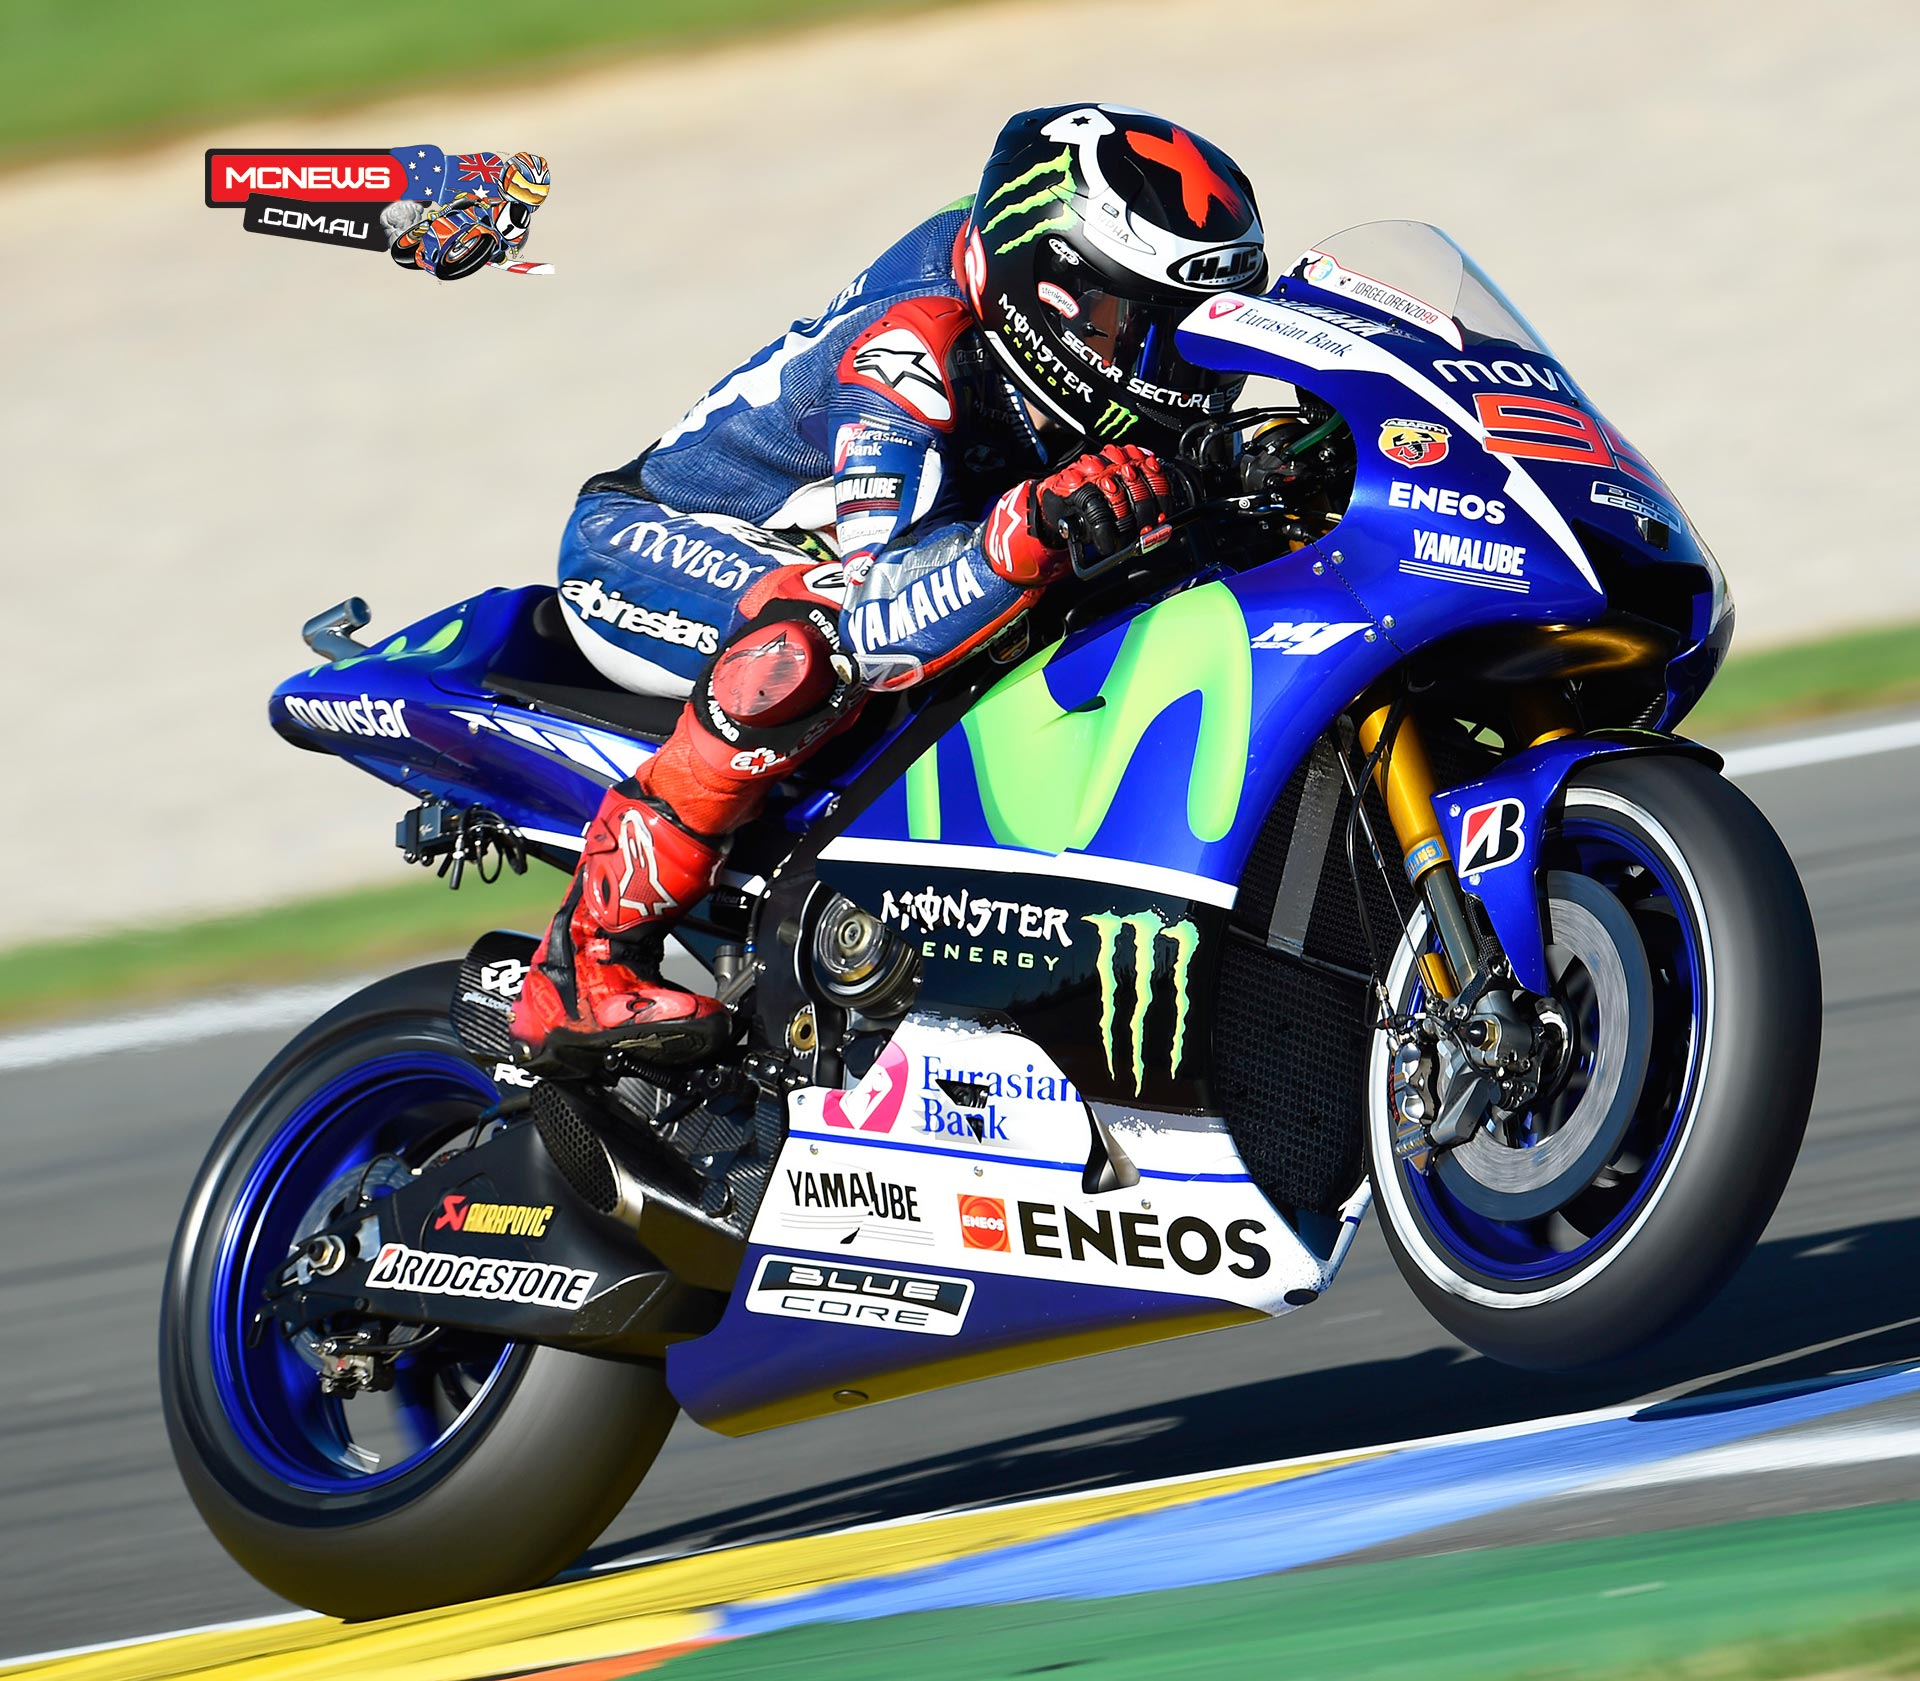 Jorge Lorenzo smashed the lap record on his way to pole ahead of Marquez and Pedrosa, as Rossi crashes and finishes Q2 in 12th.